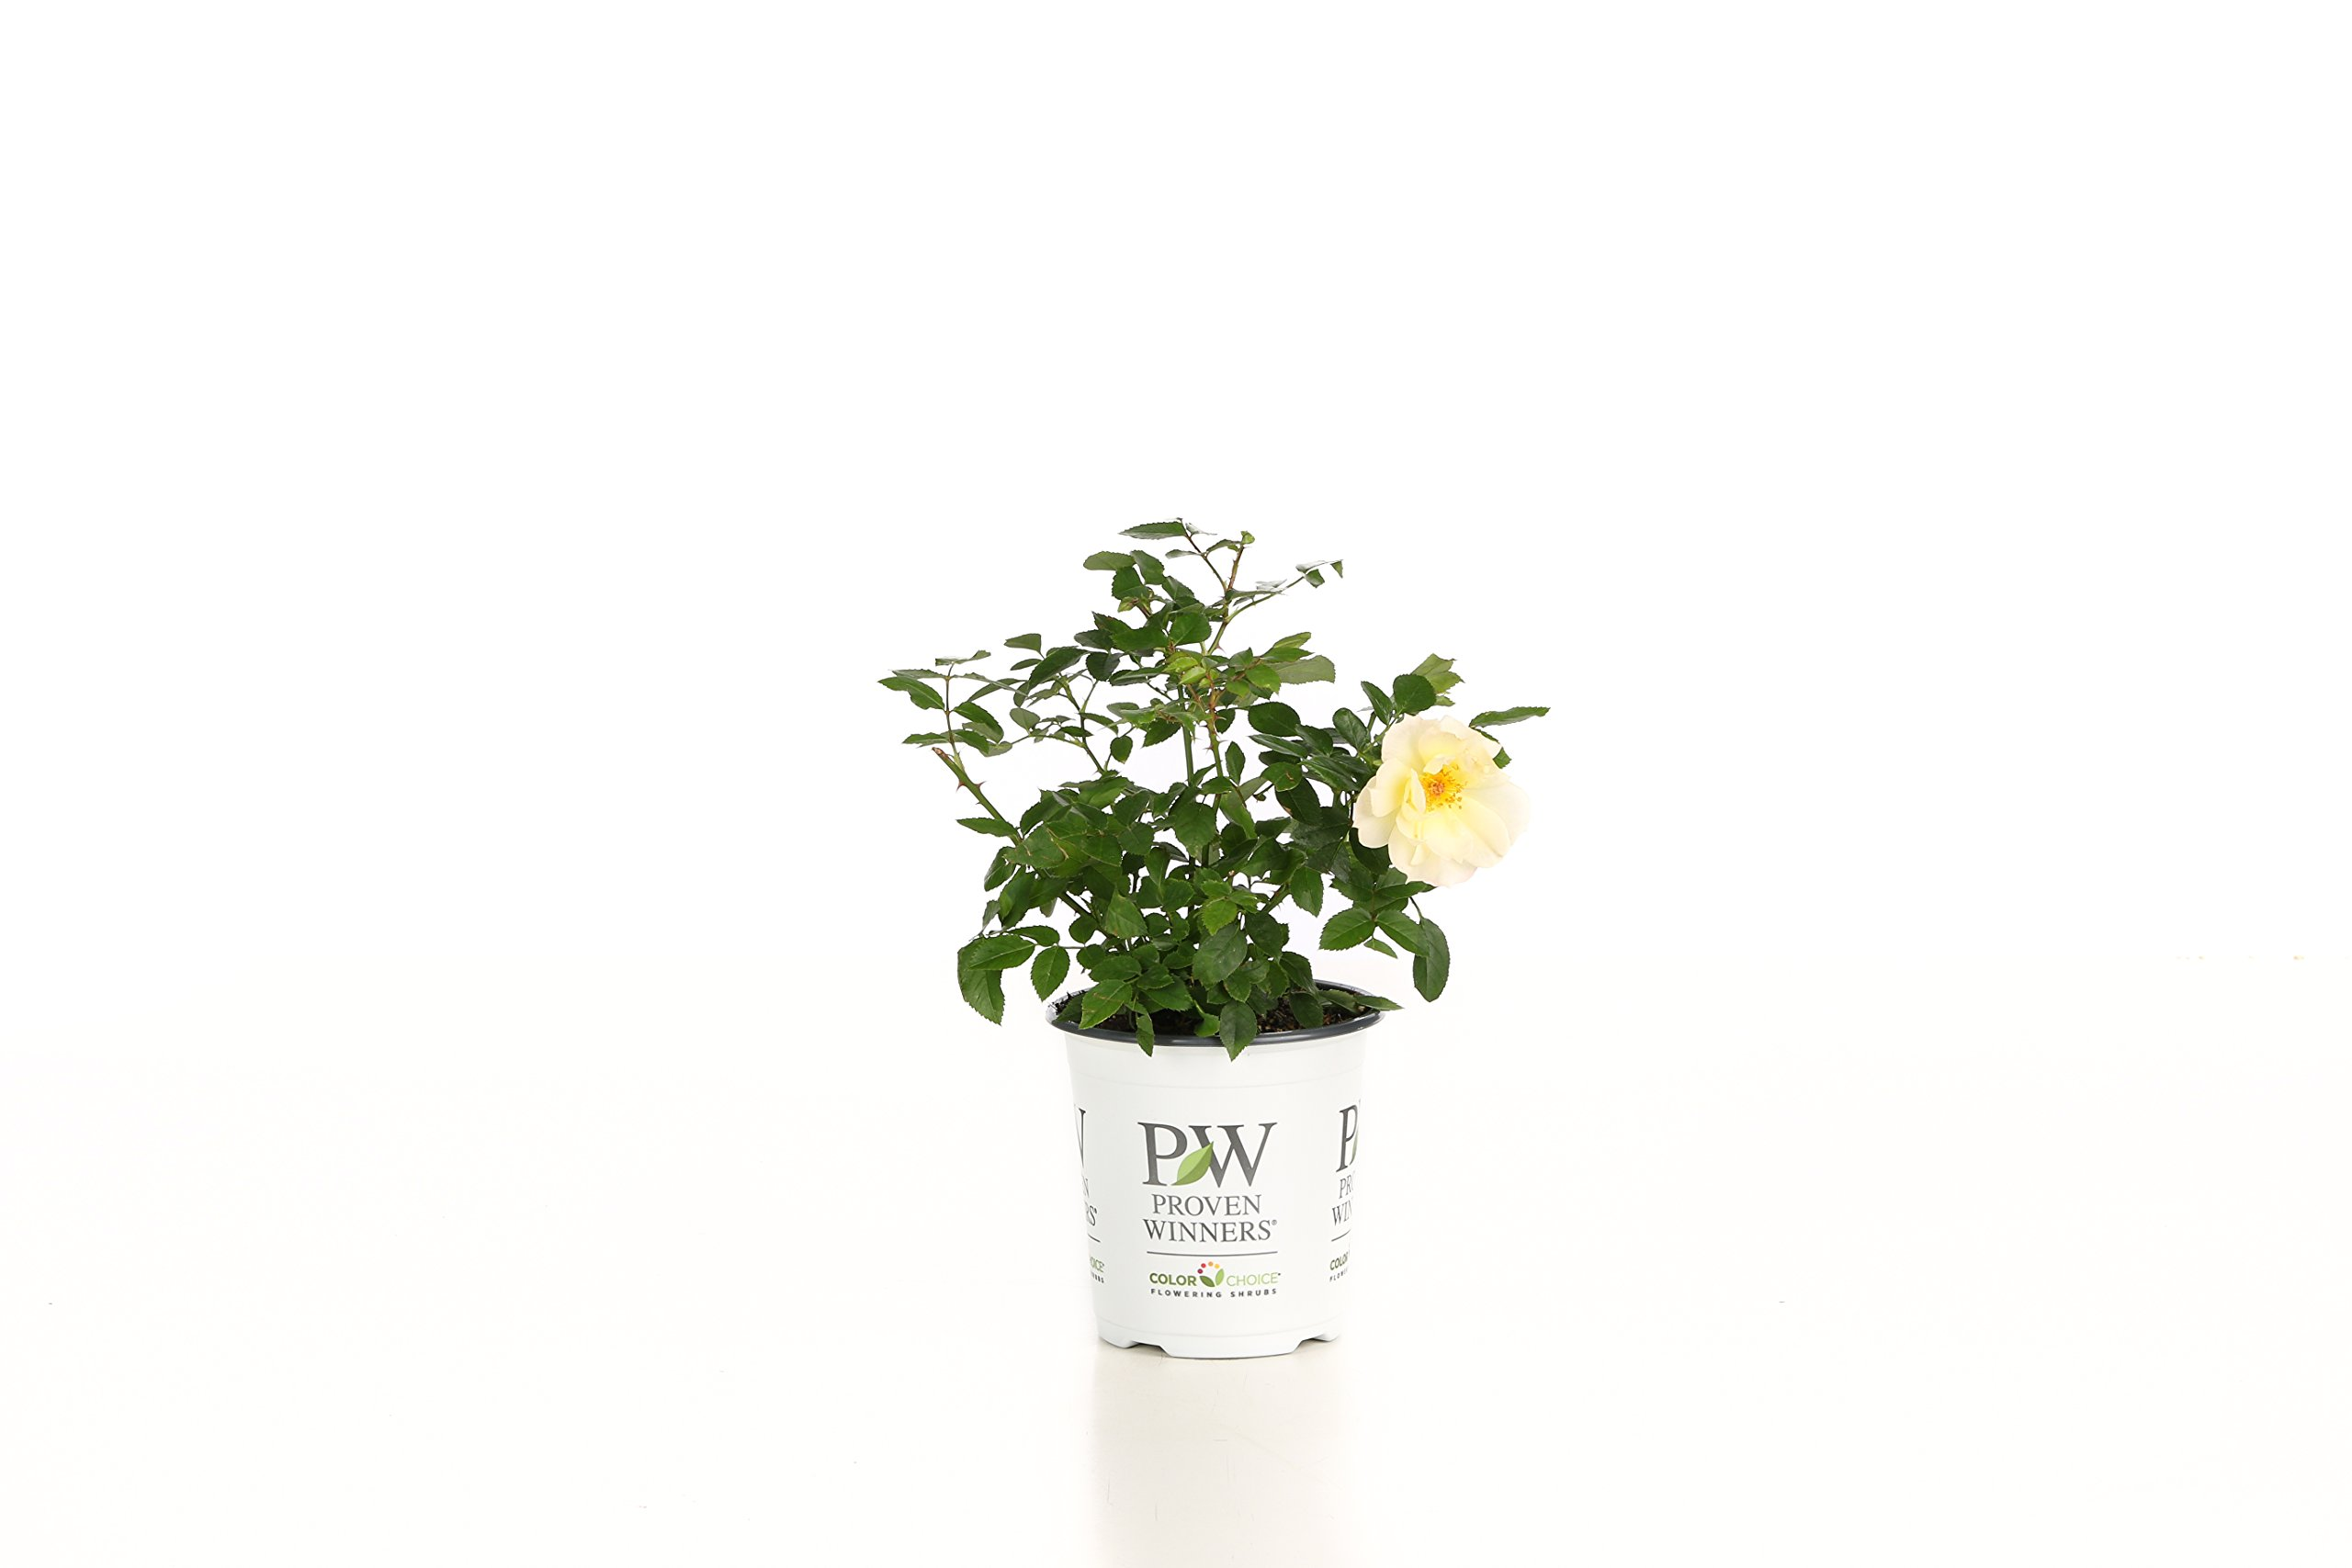 Oso Easy Italian Ice Landscape Rose (Rosa) Live Shrub, Orange, Pink, and Yellow Flowers, 4.5 in. Quart